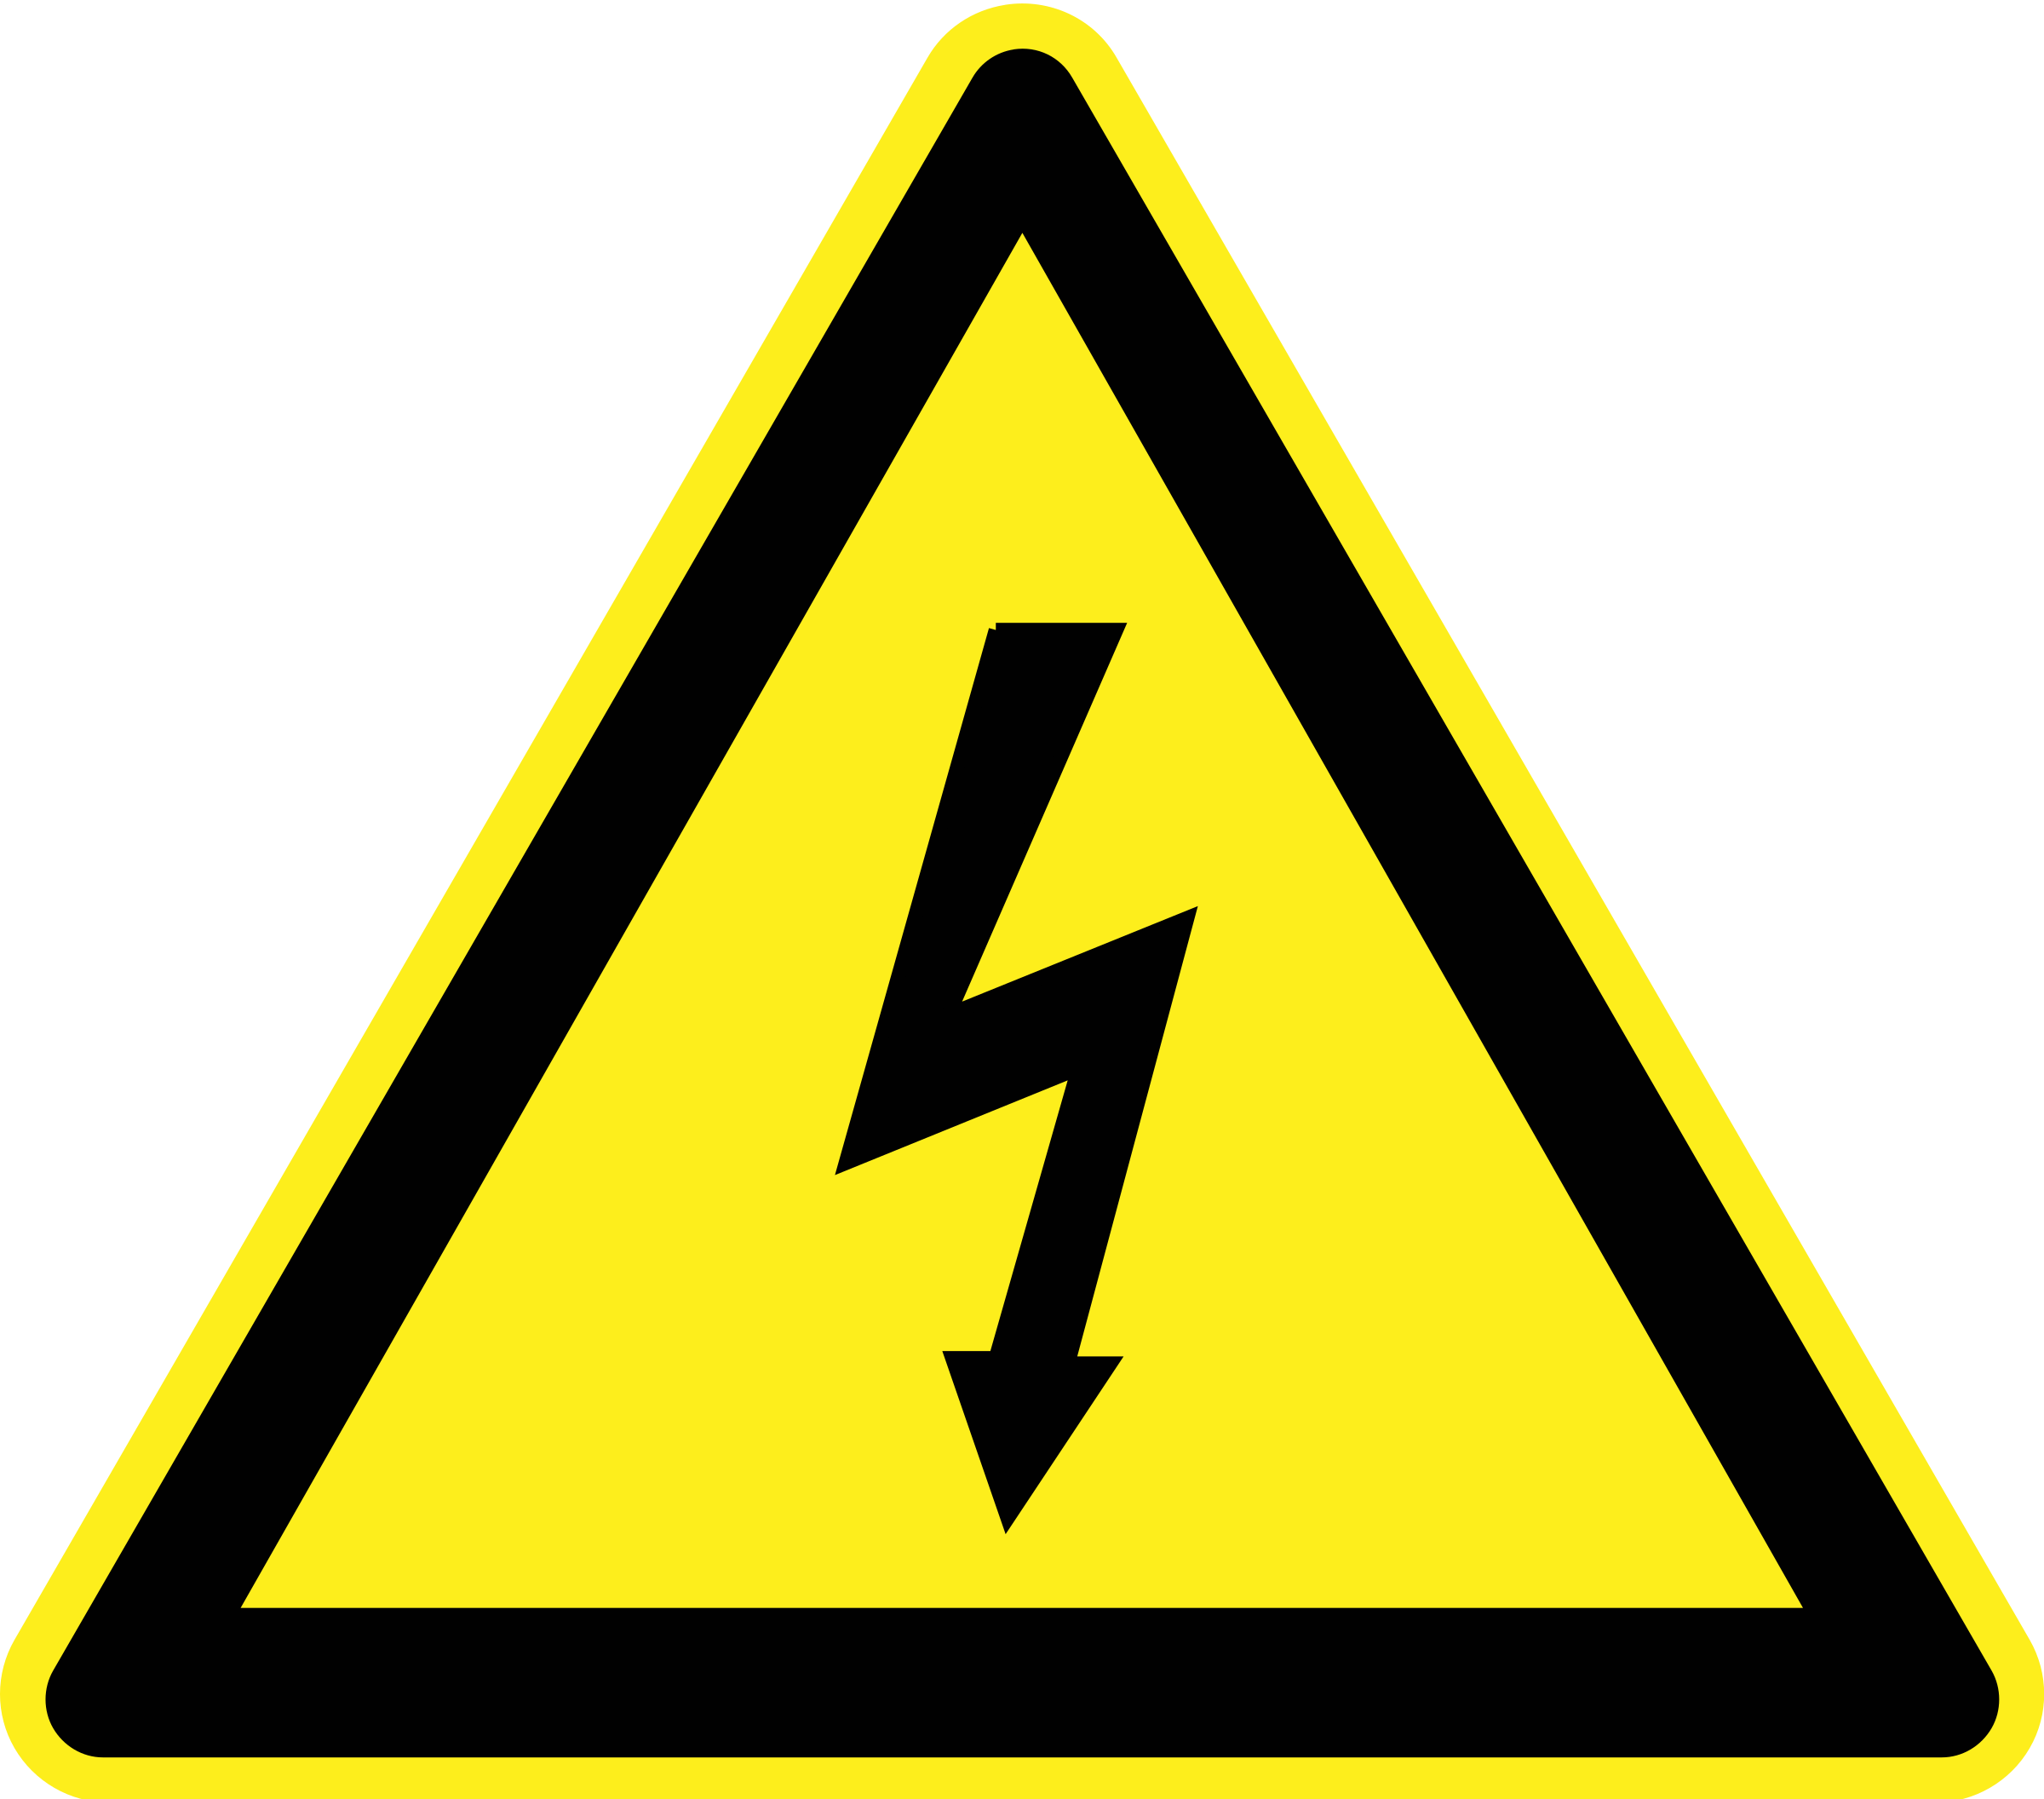 Signs Hazard Warning - Electricity by h0us3s